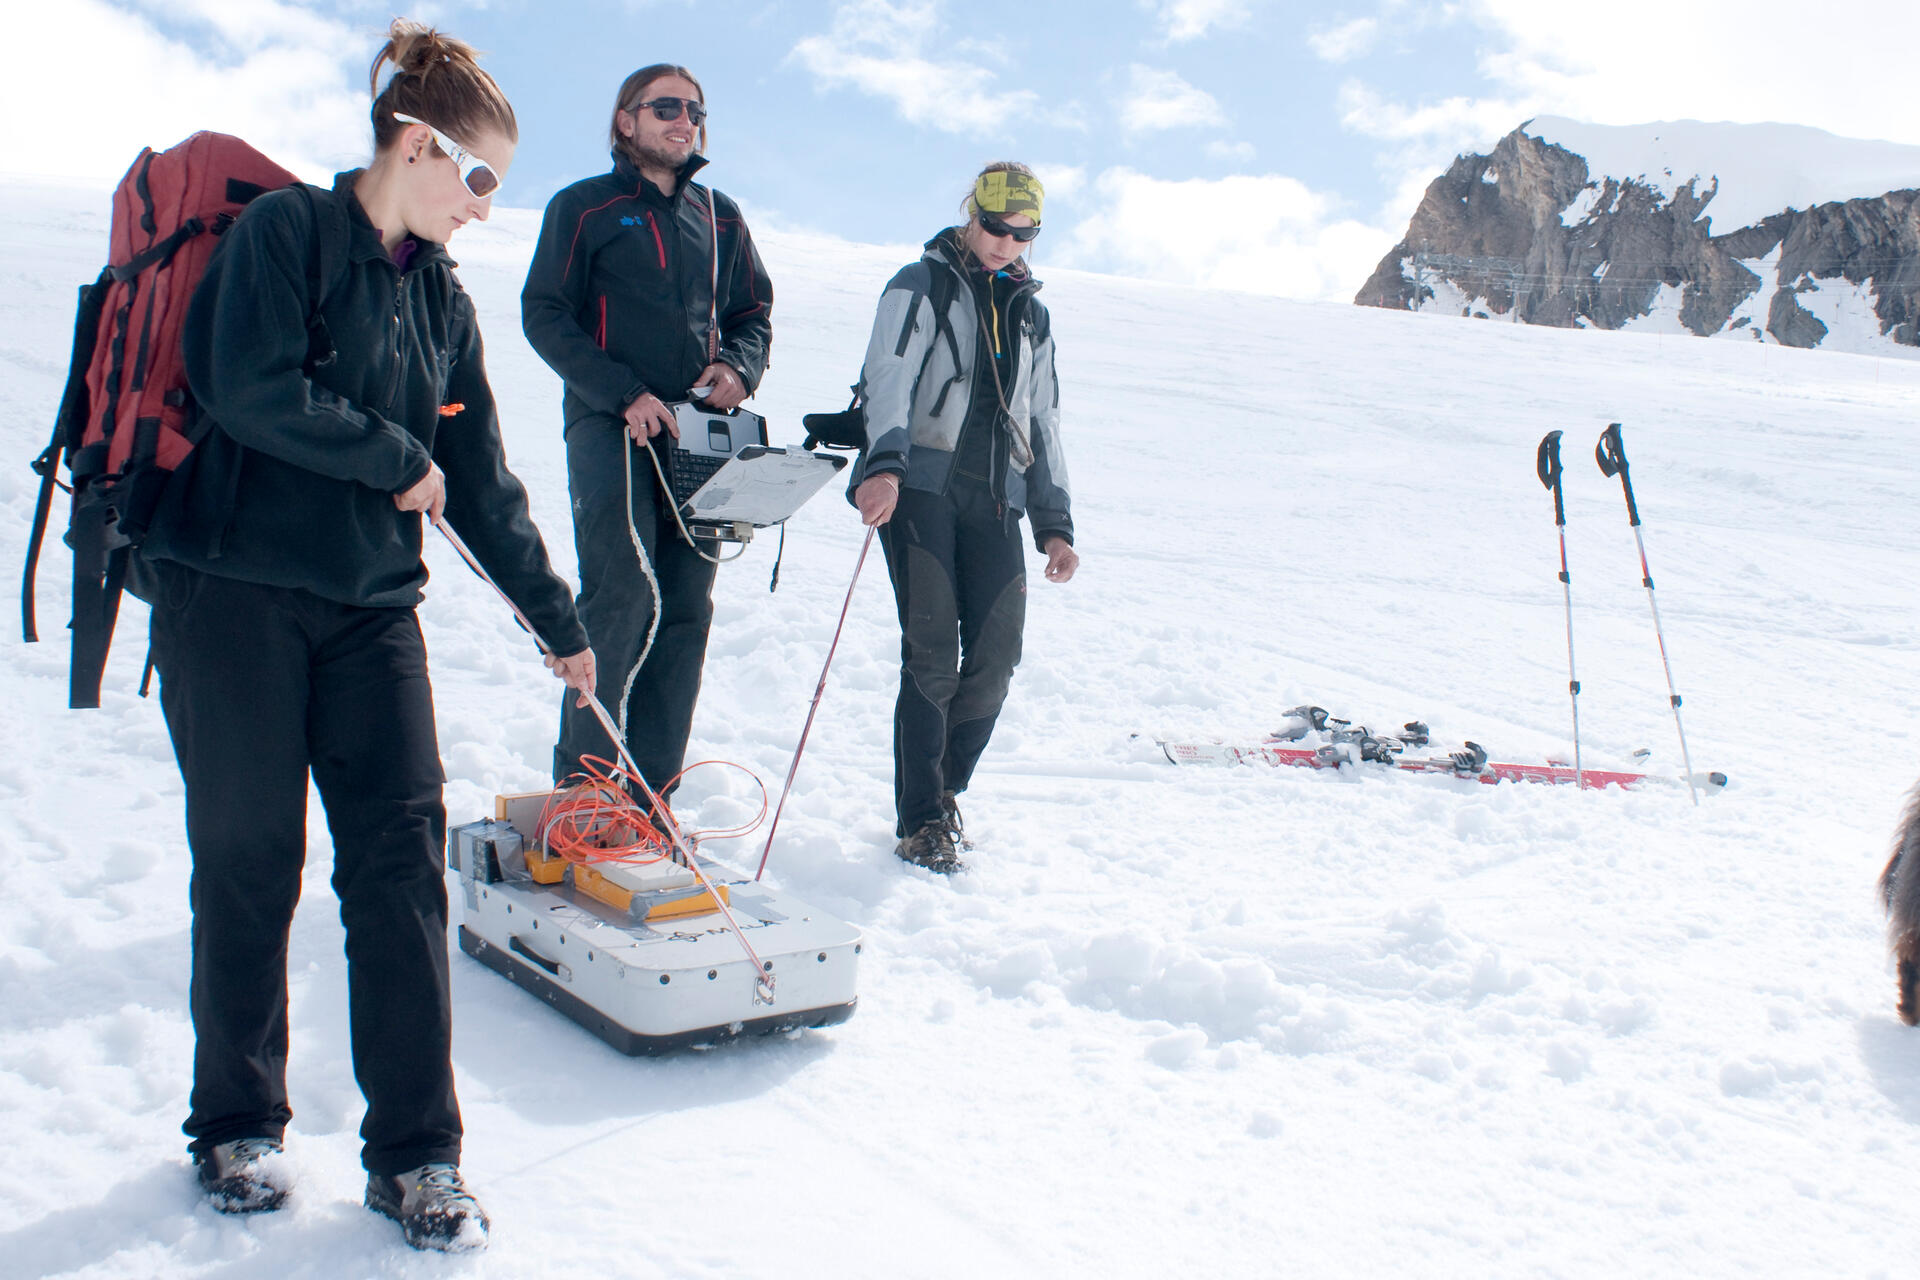 Since 2010, the summit area of the 3203 m high Kitzsteinhorn has been the location of an interdisciplinary open-air lab dedicated to monitoring permafrost as well as landslide activity | © Kitzsteinhorn